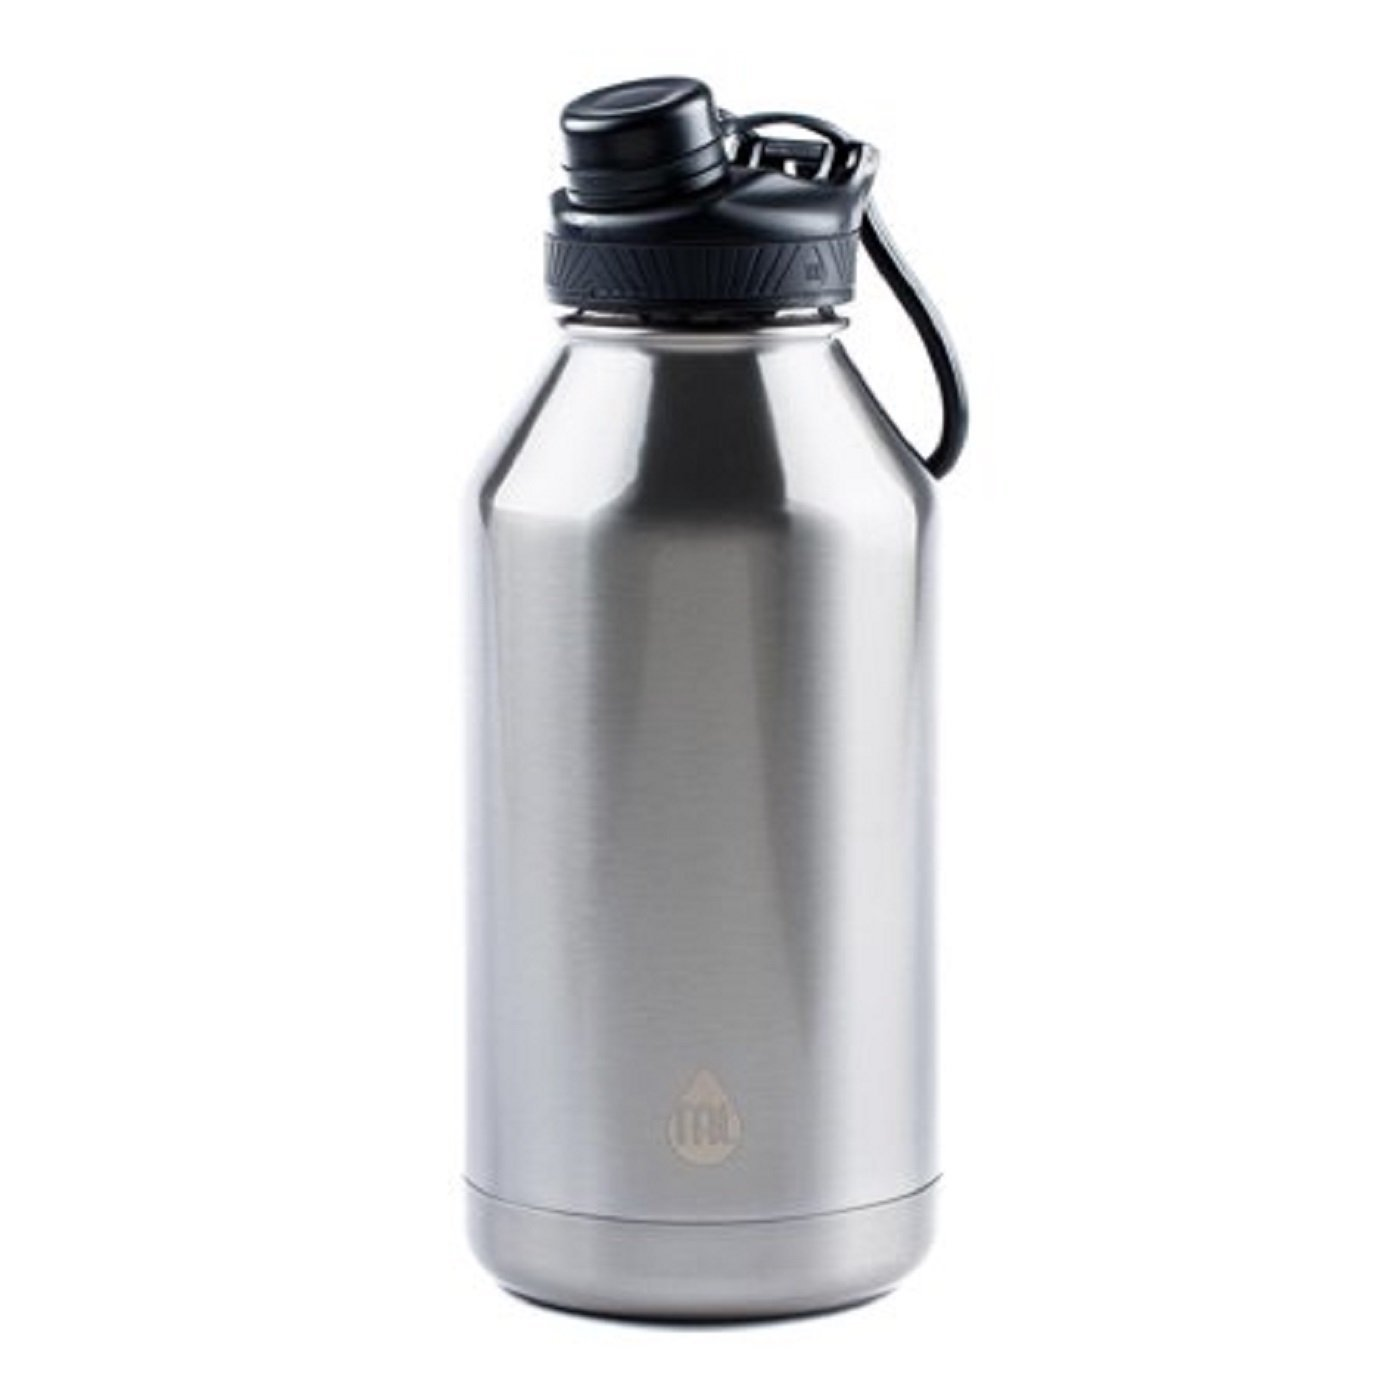 f1c0d82a6c1 Amazon.com: TAL 64oz Double Wall Vacuum Insulated Stainless Steel Ranger  Pro Water Bottle: Sports & Outdoors